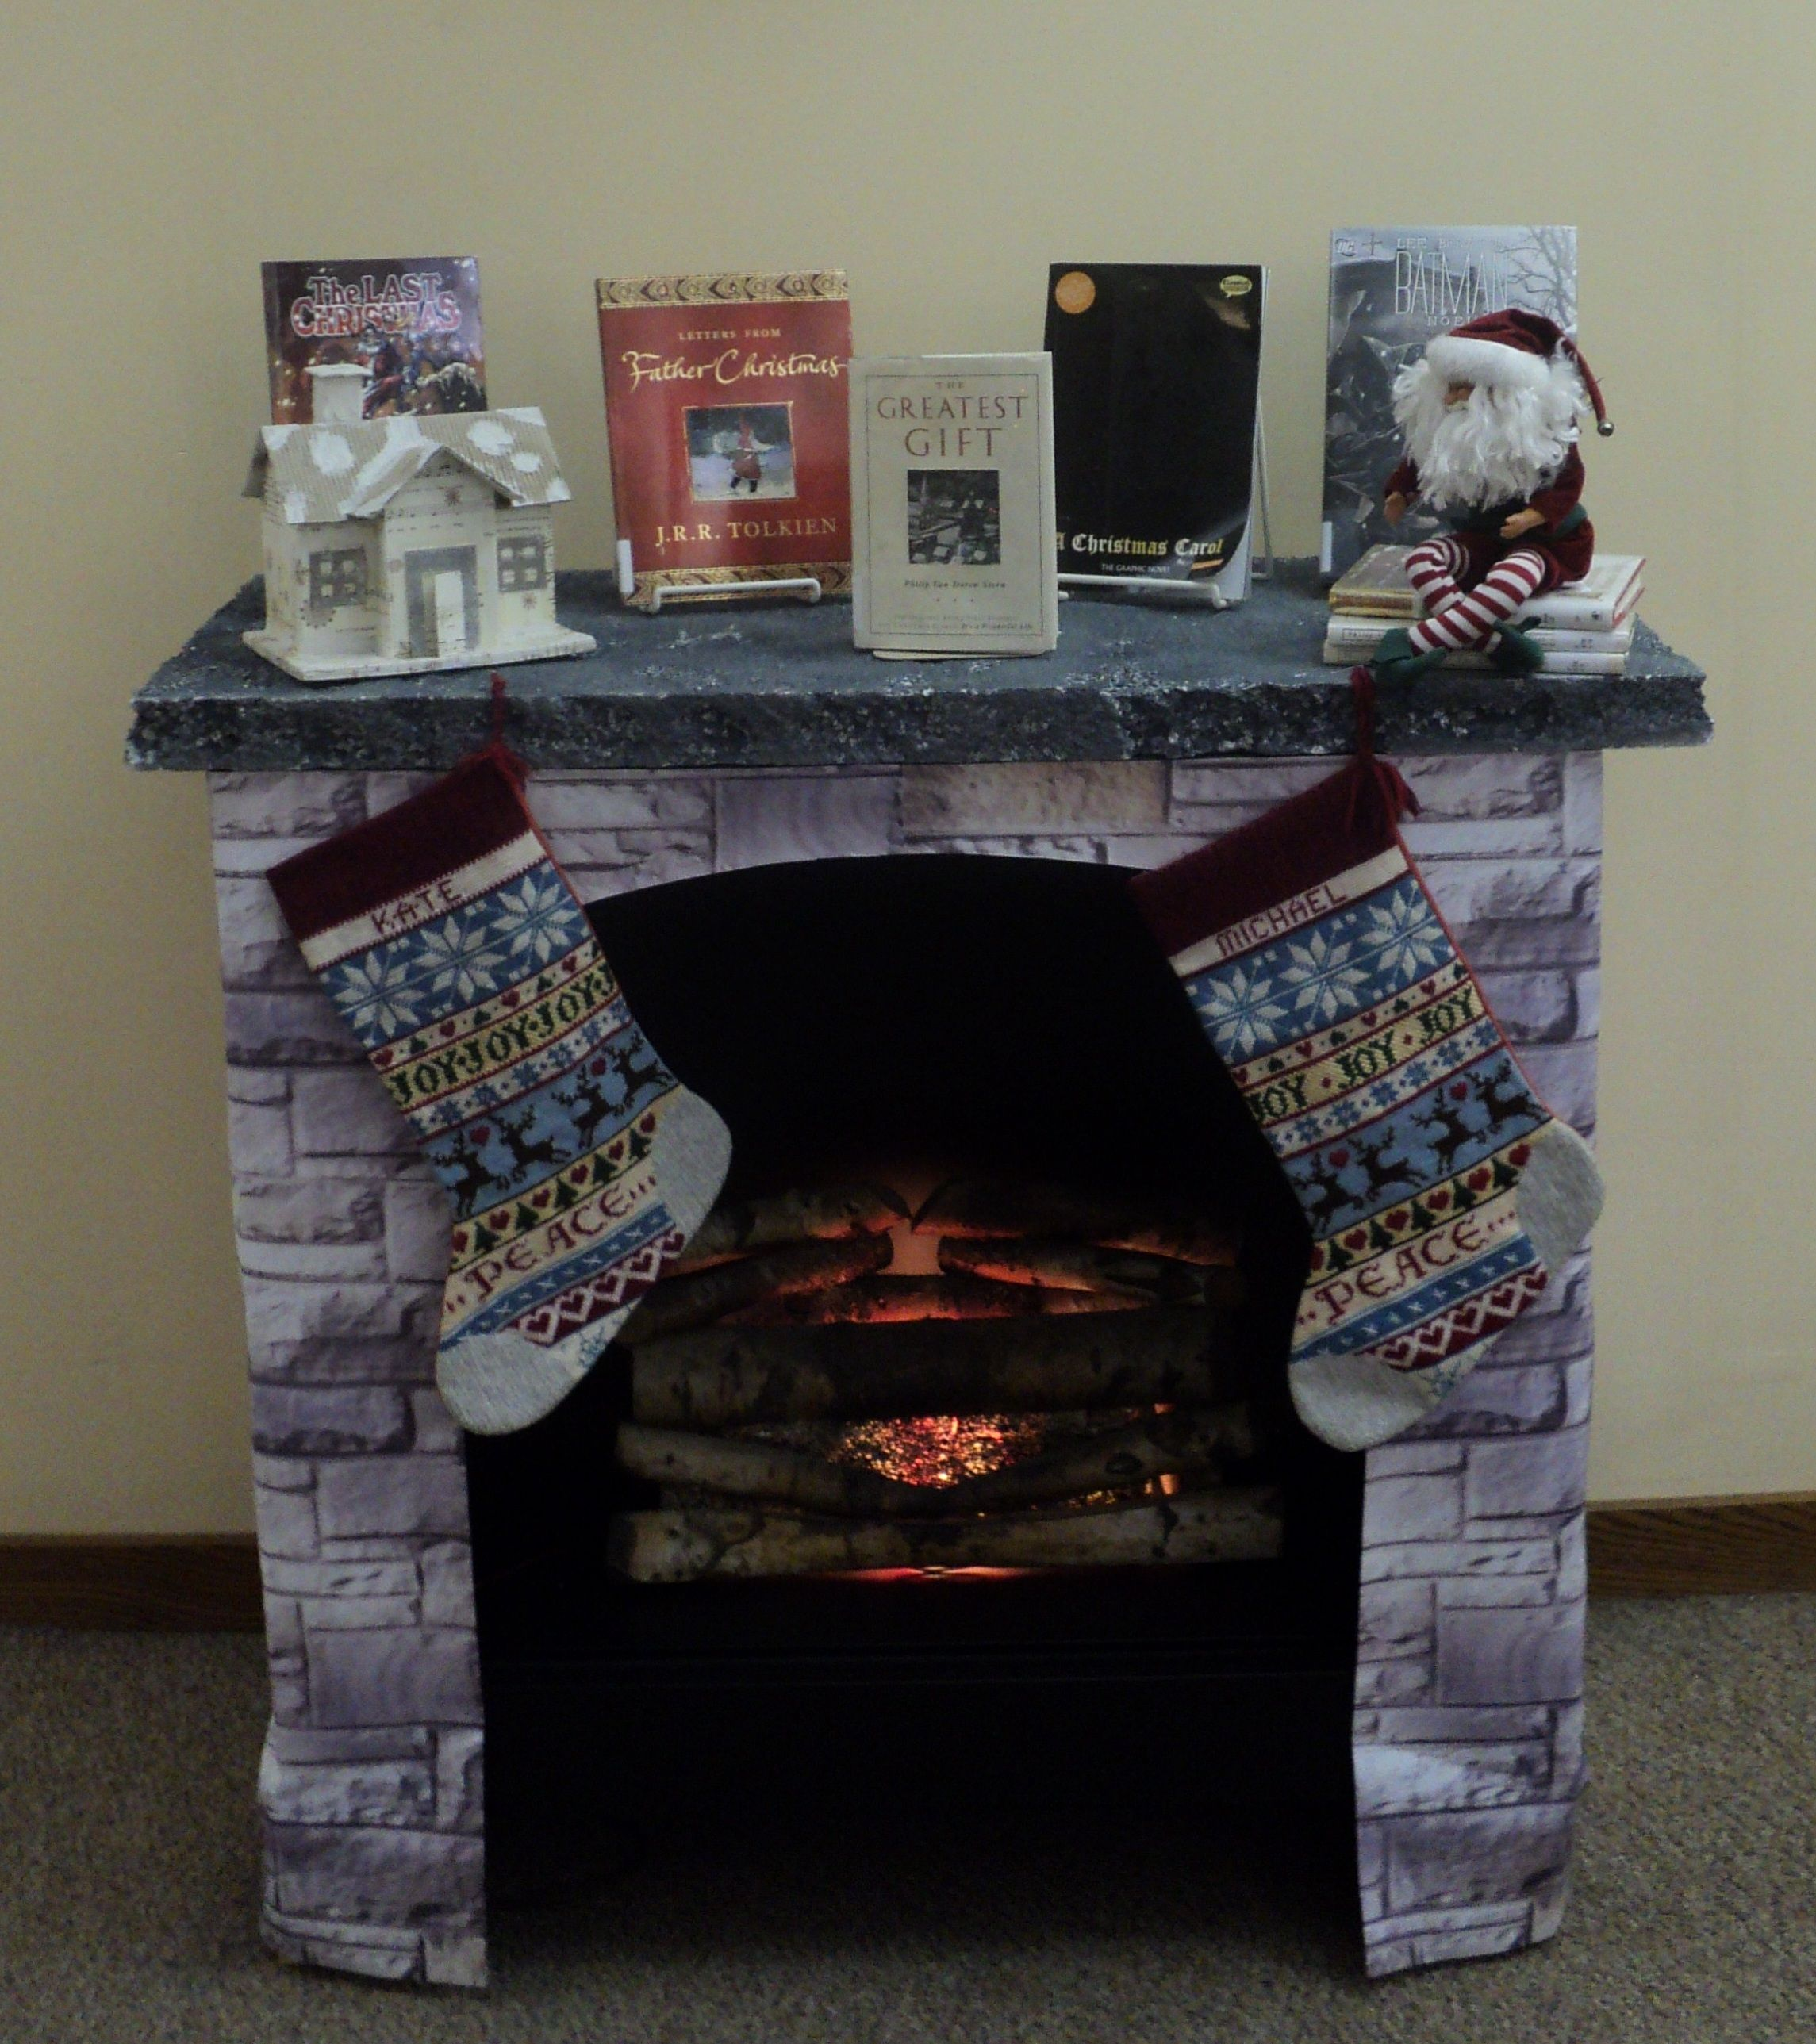 i had a lot of fun creating this faux fireplace with a book cart